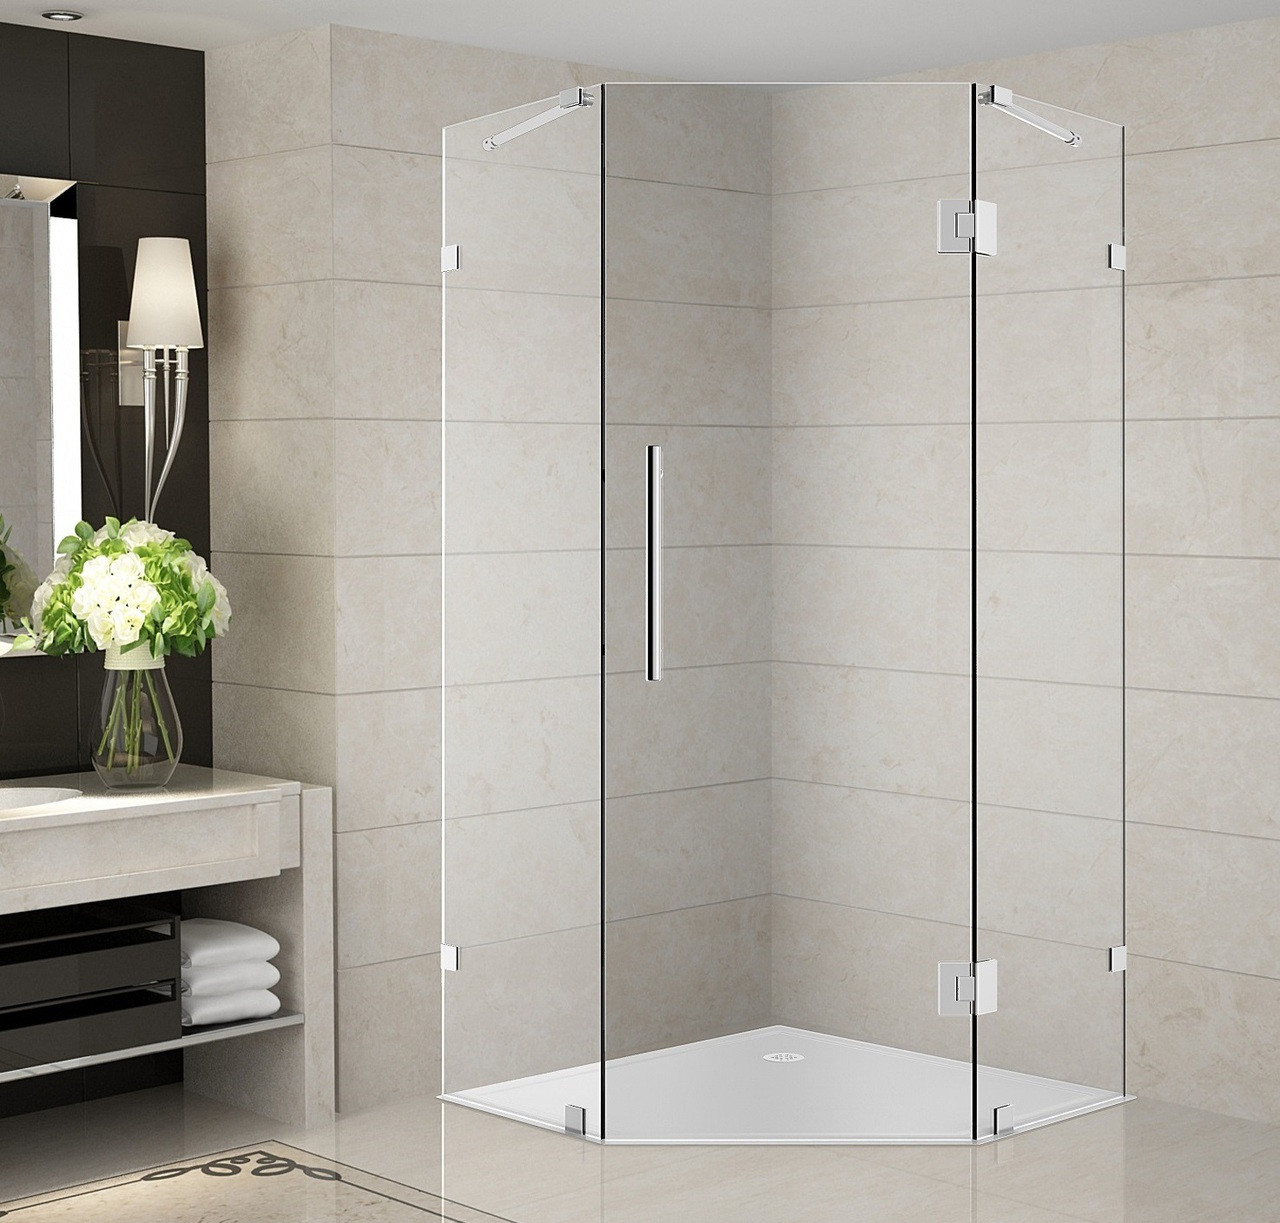 Neoscape Sen986 Completely Frameless Neo Angel Shower Enclosure